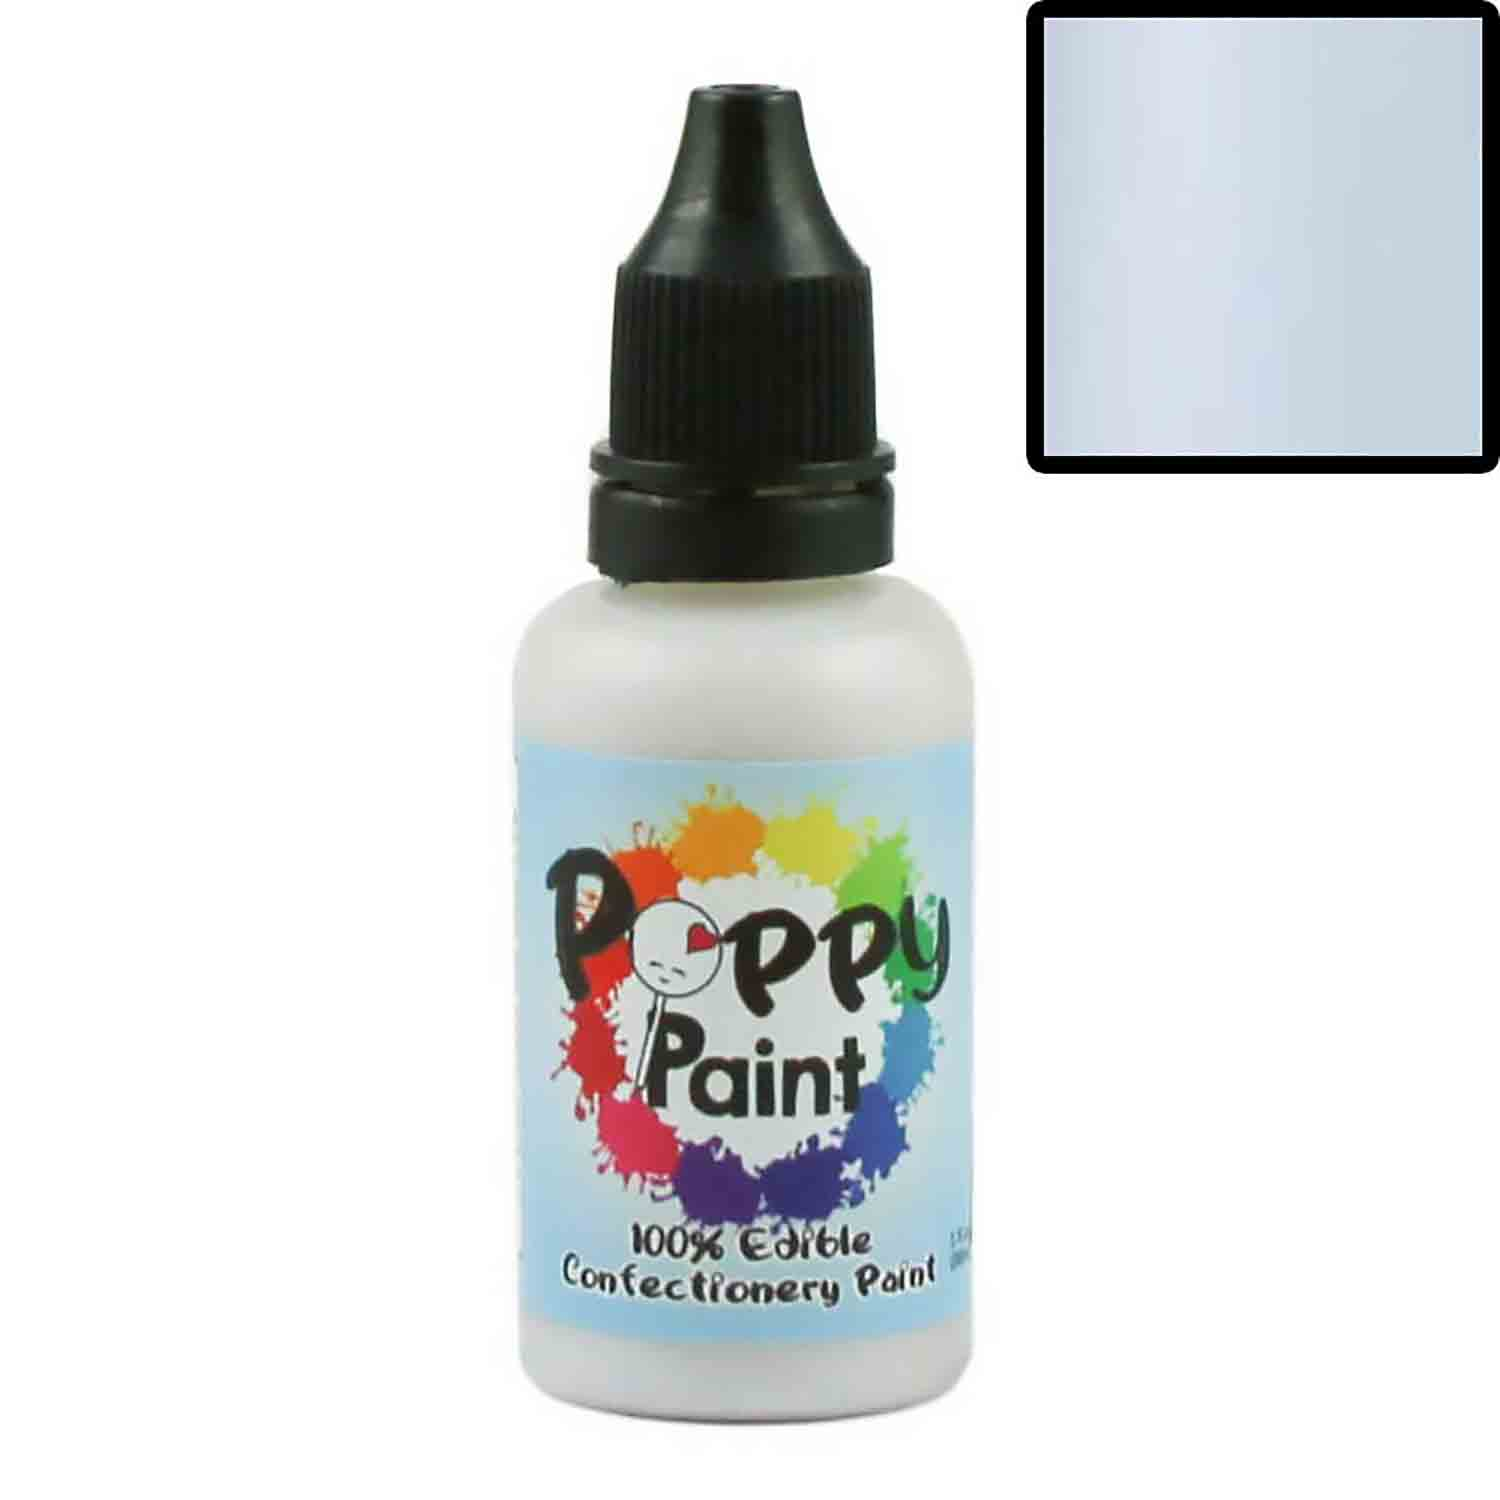 Unicorn Elixer Pearlescent Poppy Paint 100% Edible Confectionery Paint